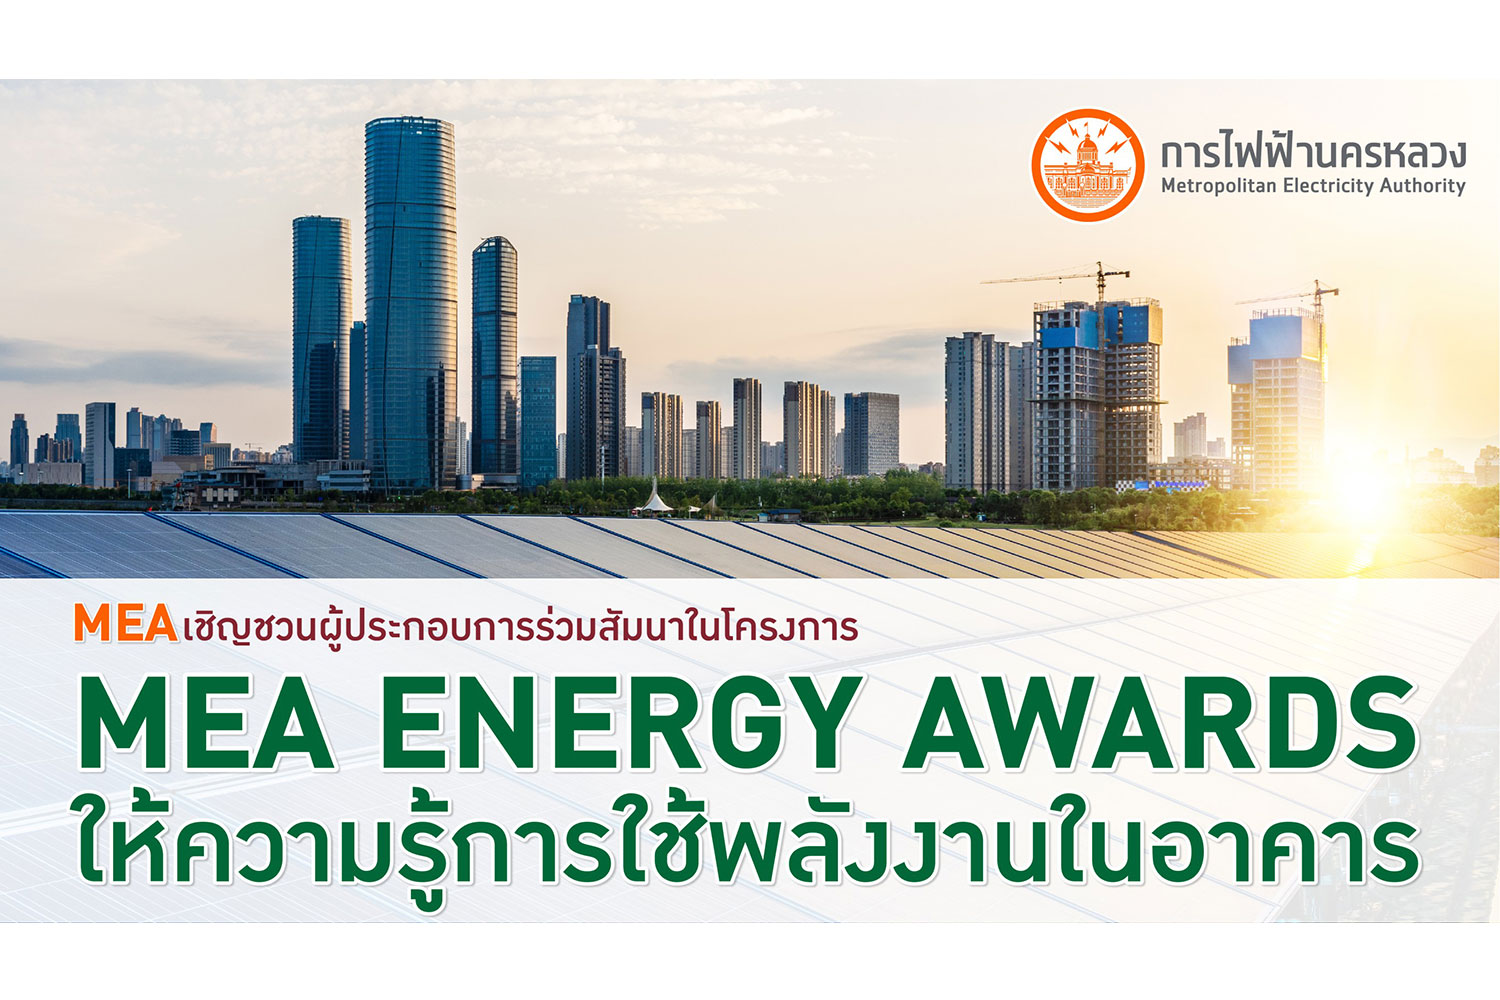 MEA launches MEA ENERGY AWARDS for energy efficiency improvement